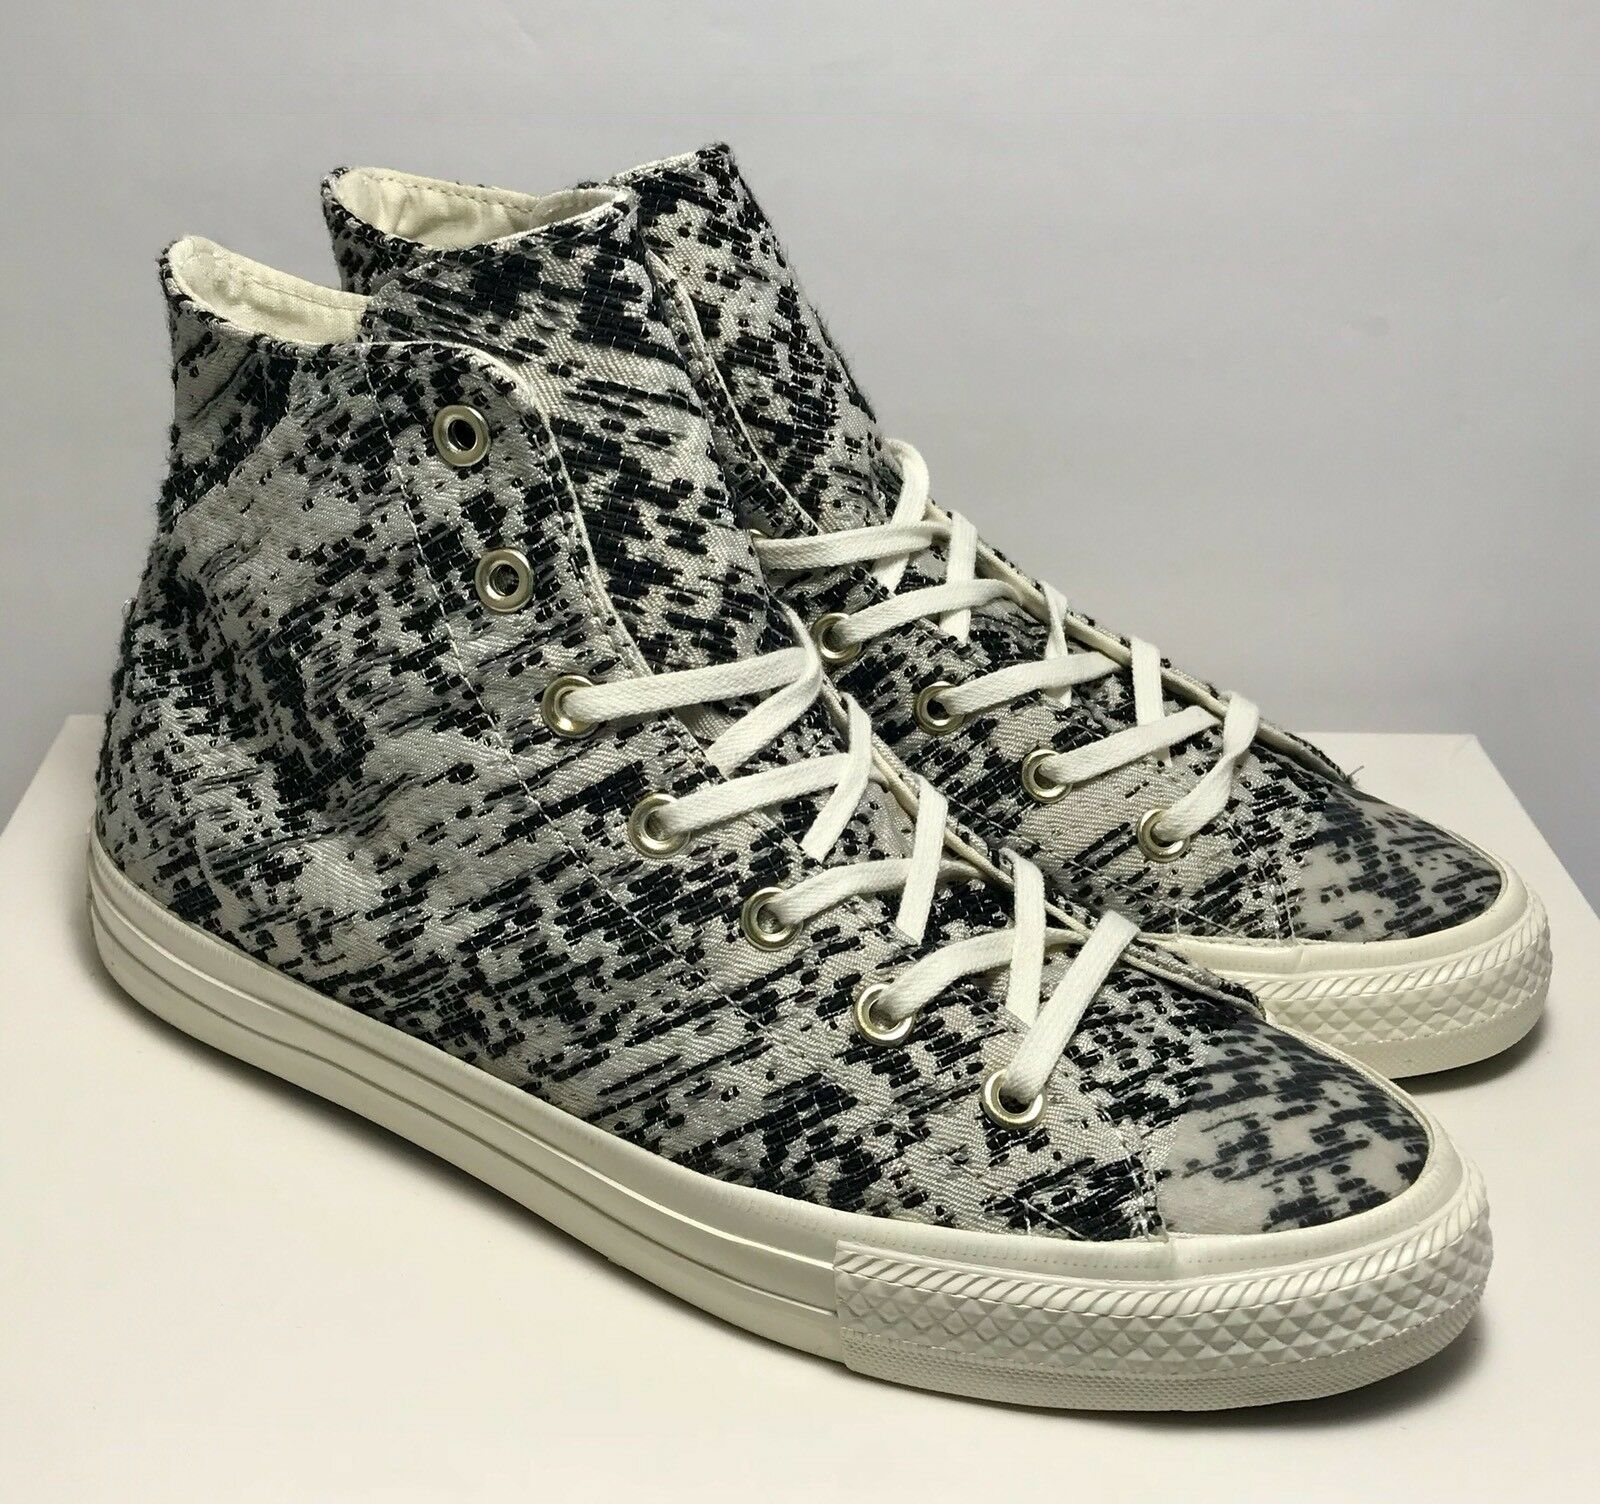 Converse Womens Size 10 Gemma Chuck Taylor All Star Gemma 10 Knit Oreo Shoes Sneakers 1569d0